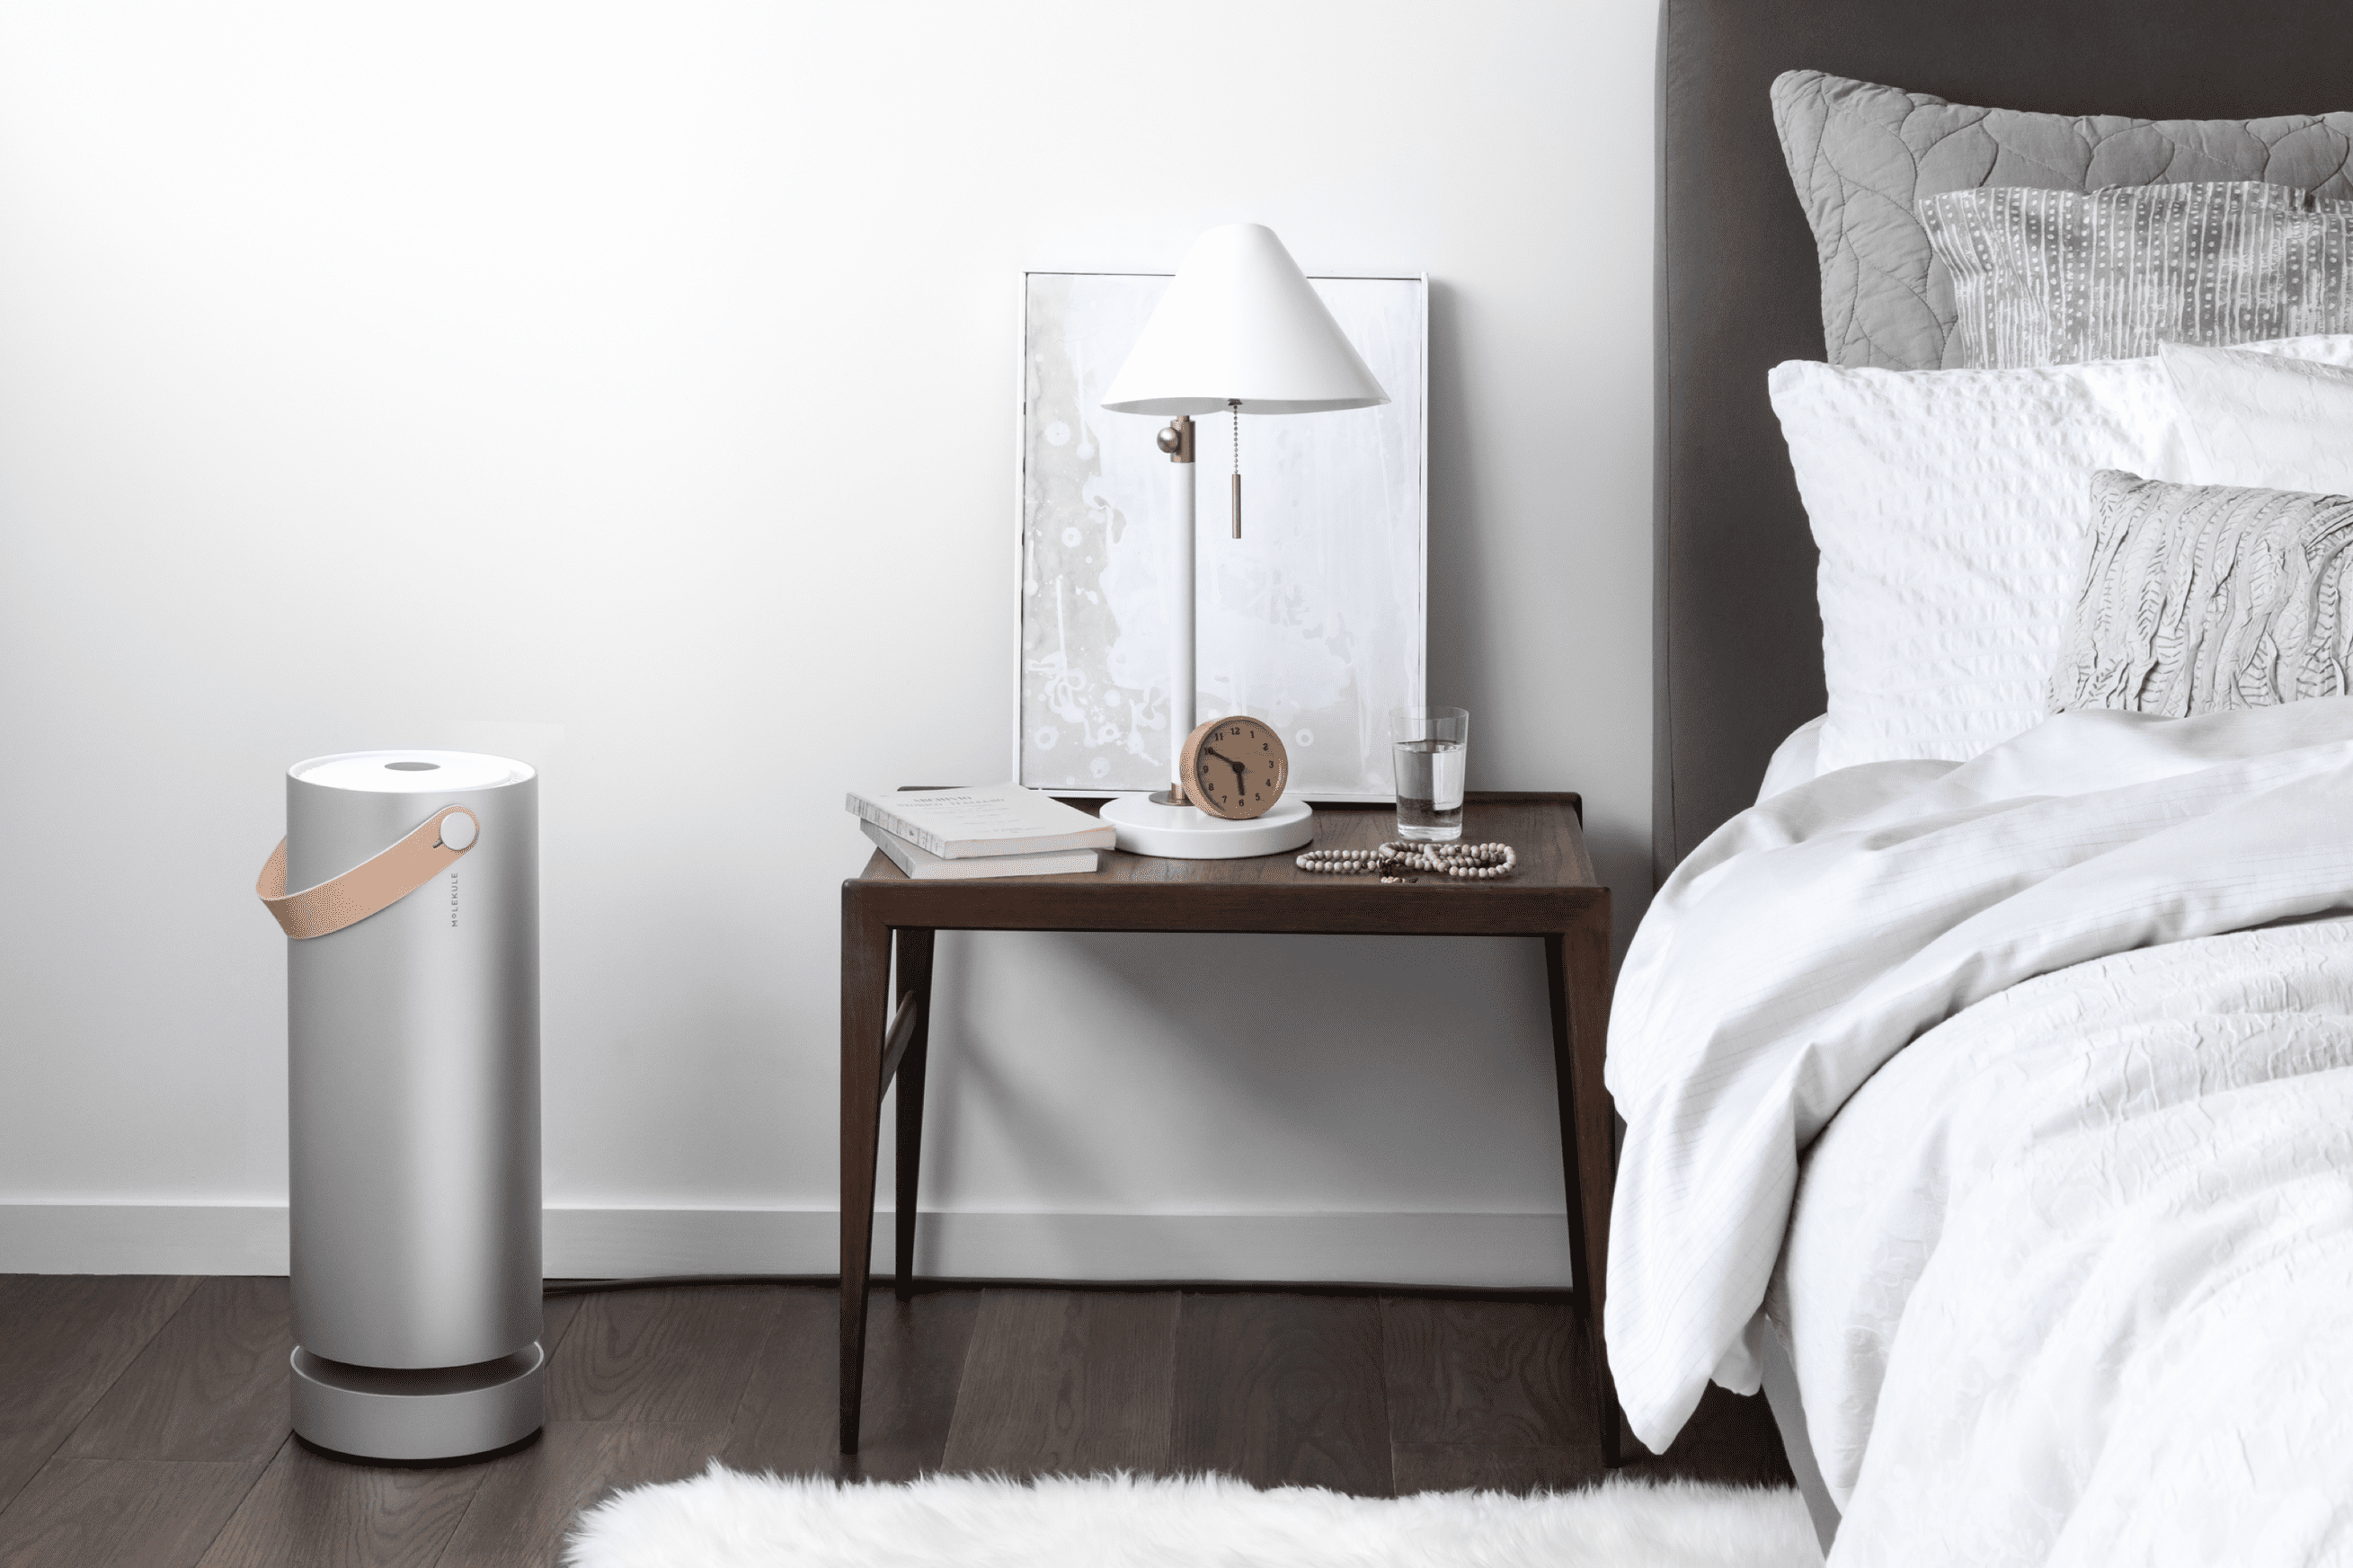 Allergens, Pet Dander, and Dust Are No Match for These A+ Air Purifiers